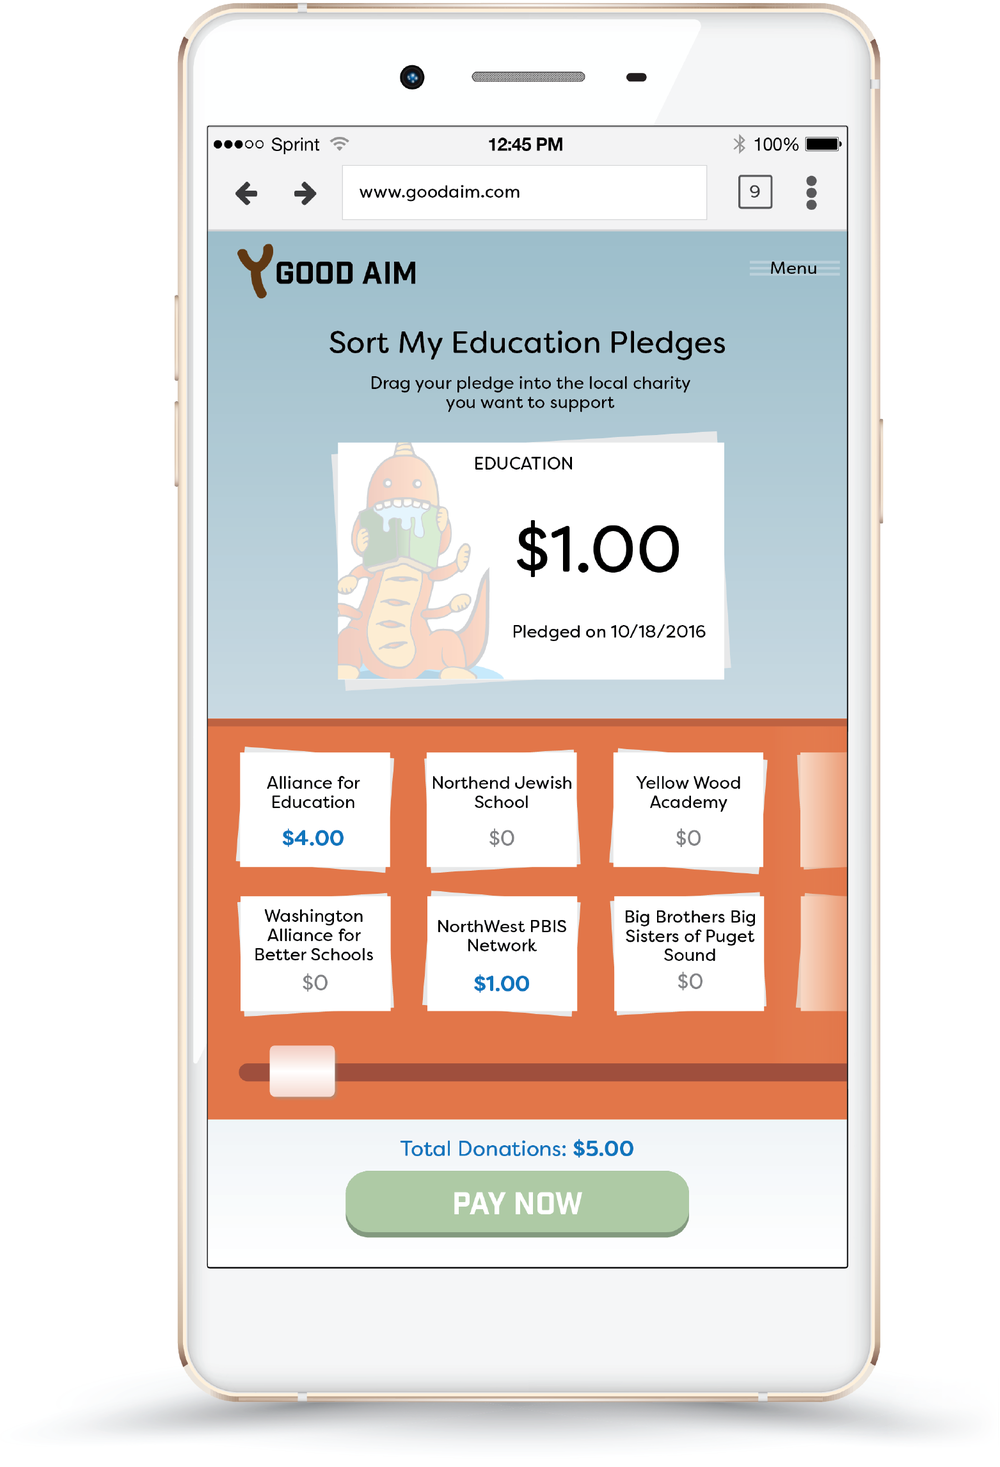 WHILE spendING money responsibly. - We were constrained by the Apple Store's policy of not collecting donations on behalf of non-approved charities. So instead, we encourage donations through a pledging system.This allows micro-donations and has the added benefit of parents monitoring how much money is spent and where.